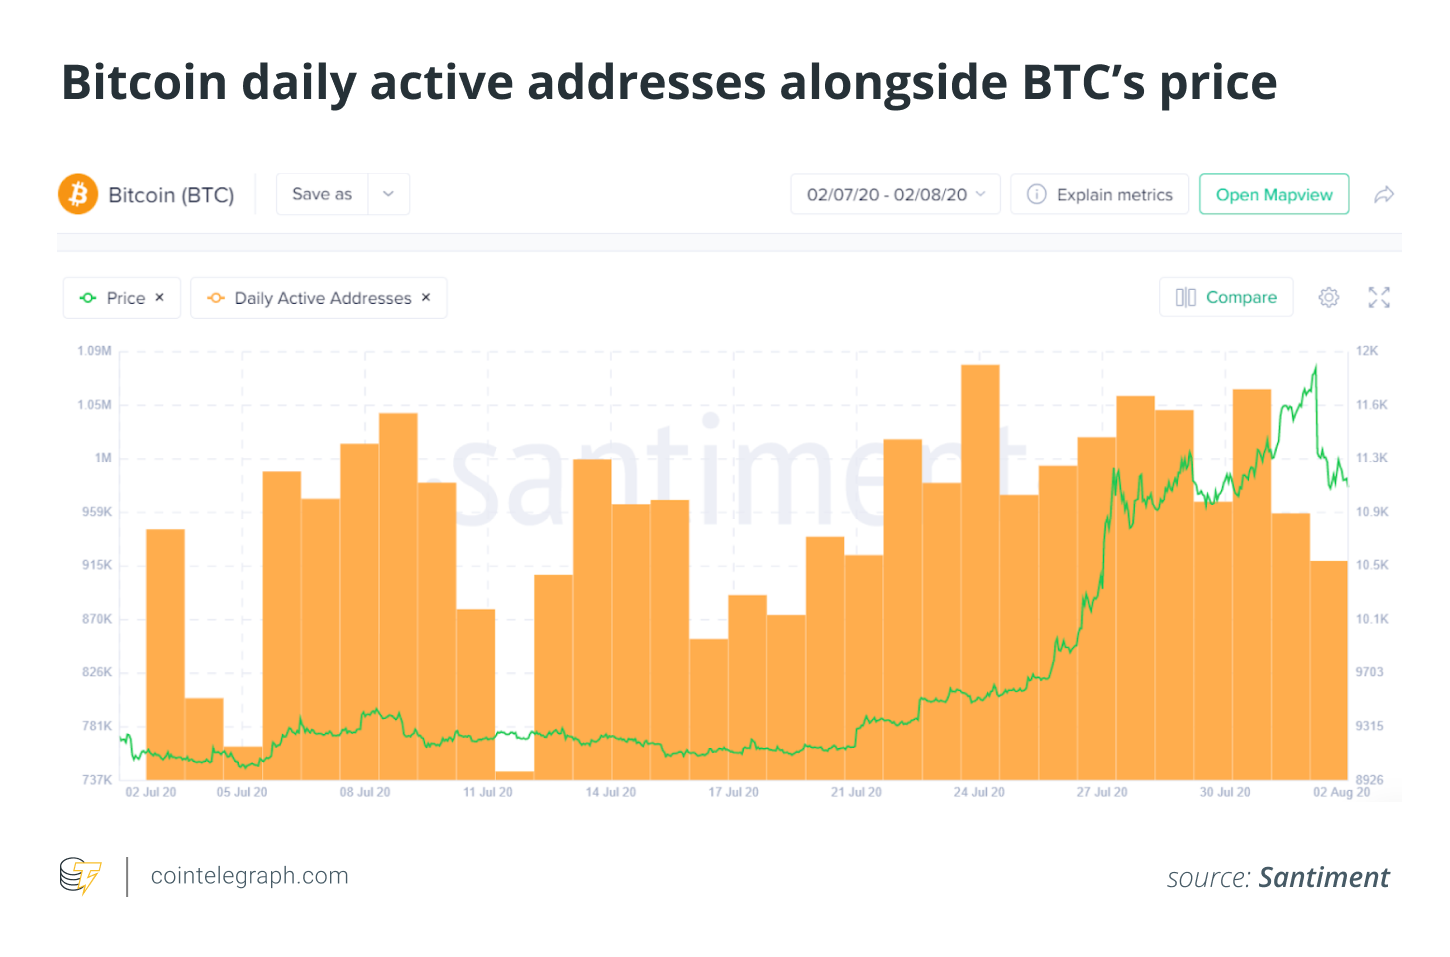 Bitcoin daily active addresses alongside BTC's price